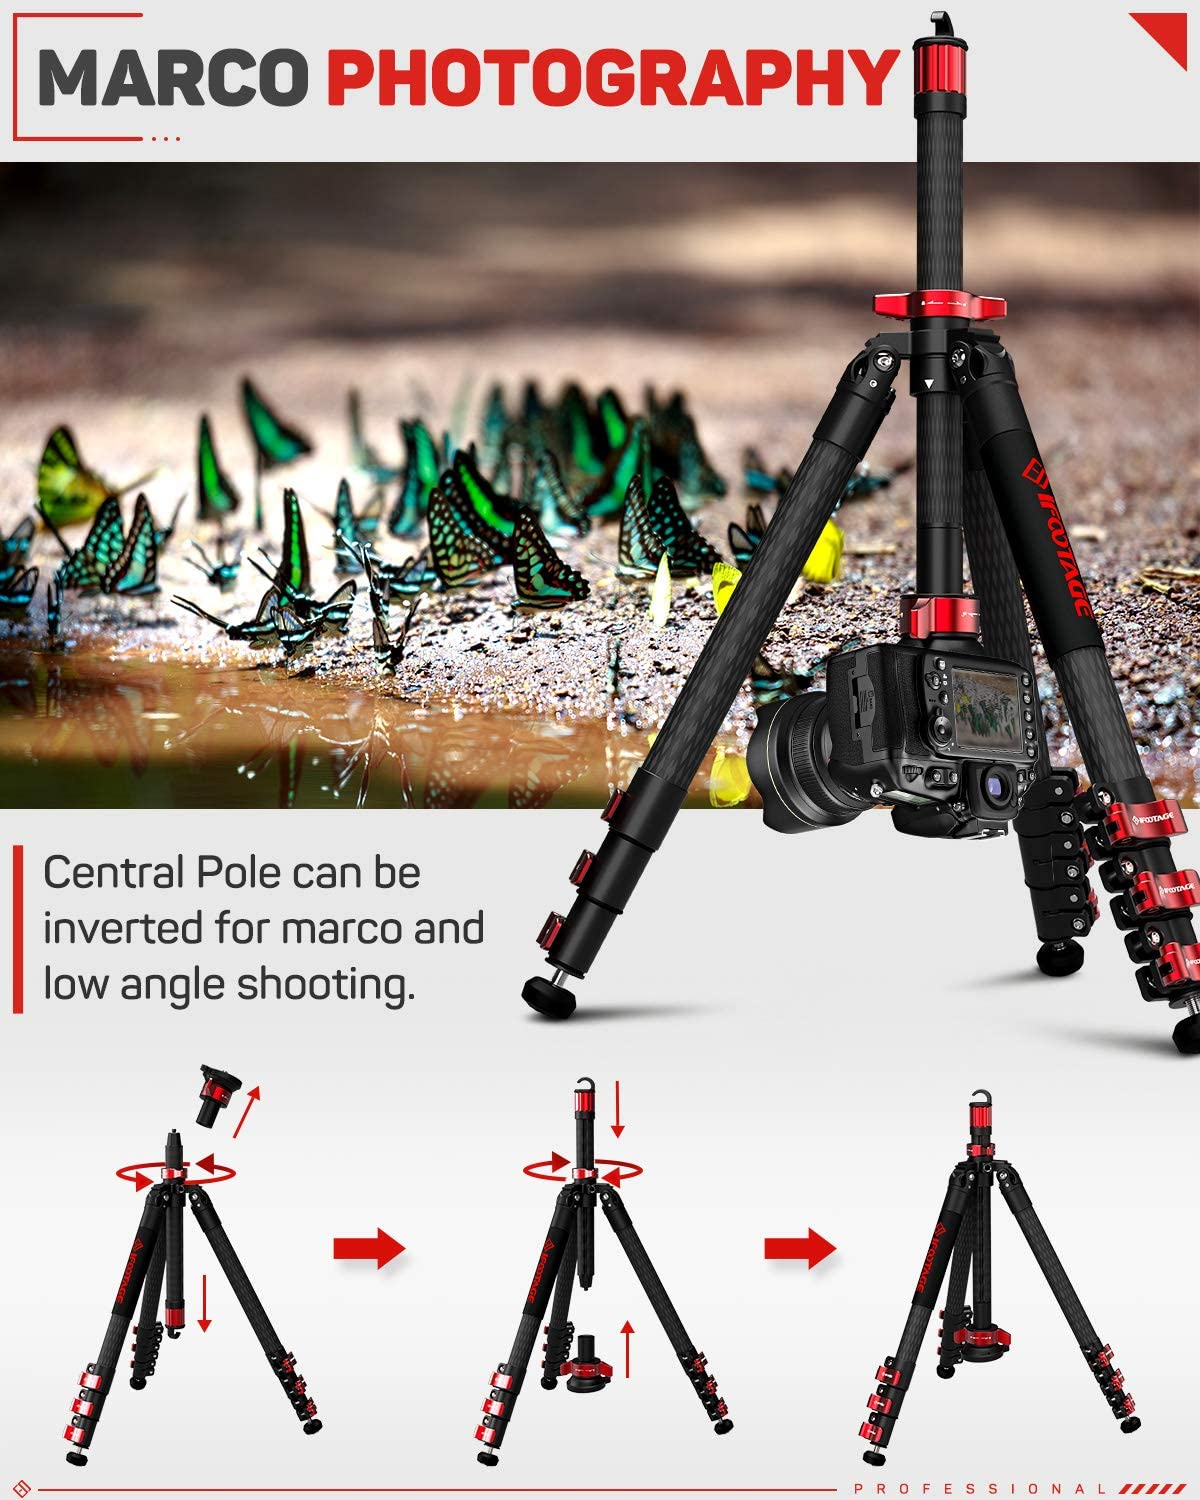 Compatible with Canon Sony DSLR Camcorder Video Photography IFOOTAGE 65 Carbon Fiber Video Tripod Nikon Professional Camera Tripods 3 Sections with Centre Pole,Max Load 17.6 lbs